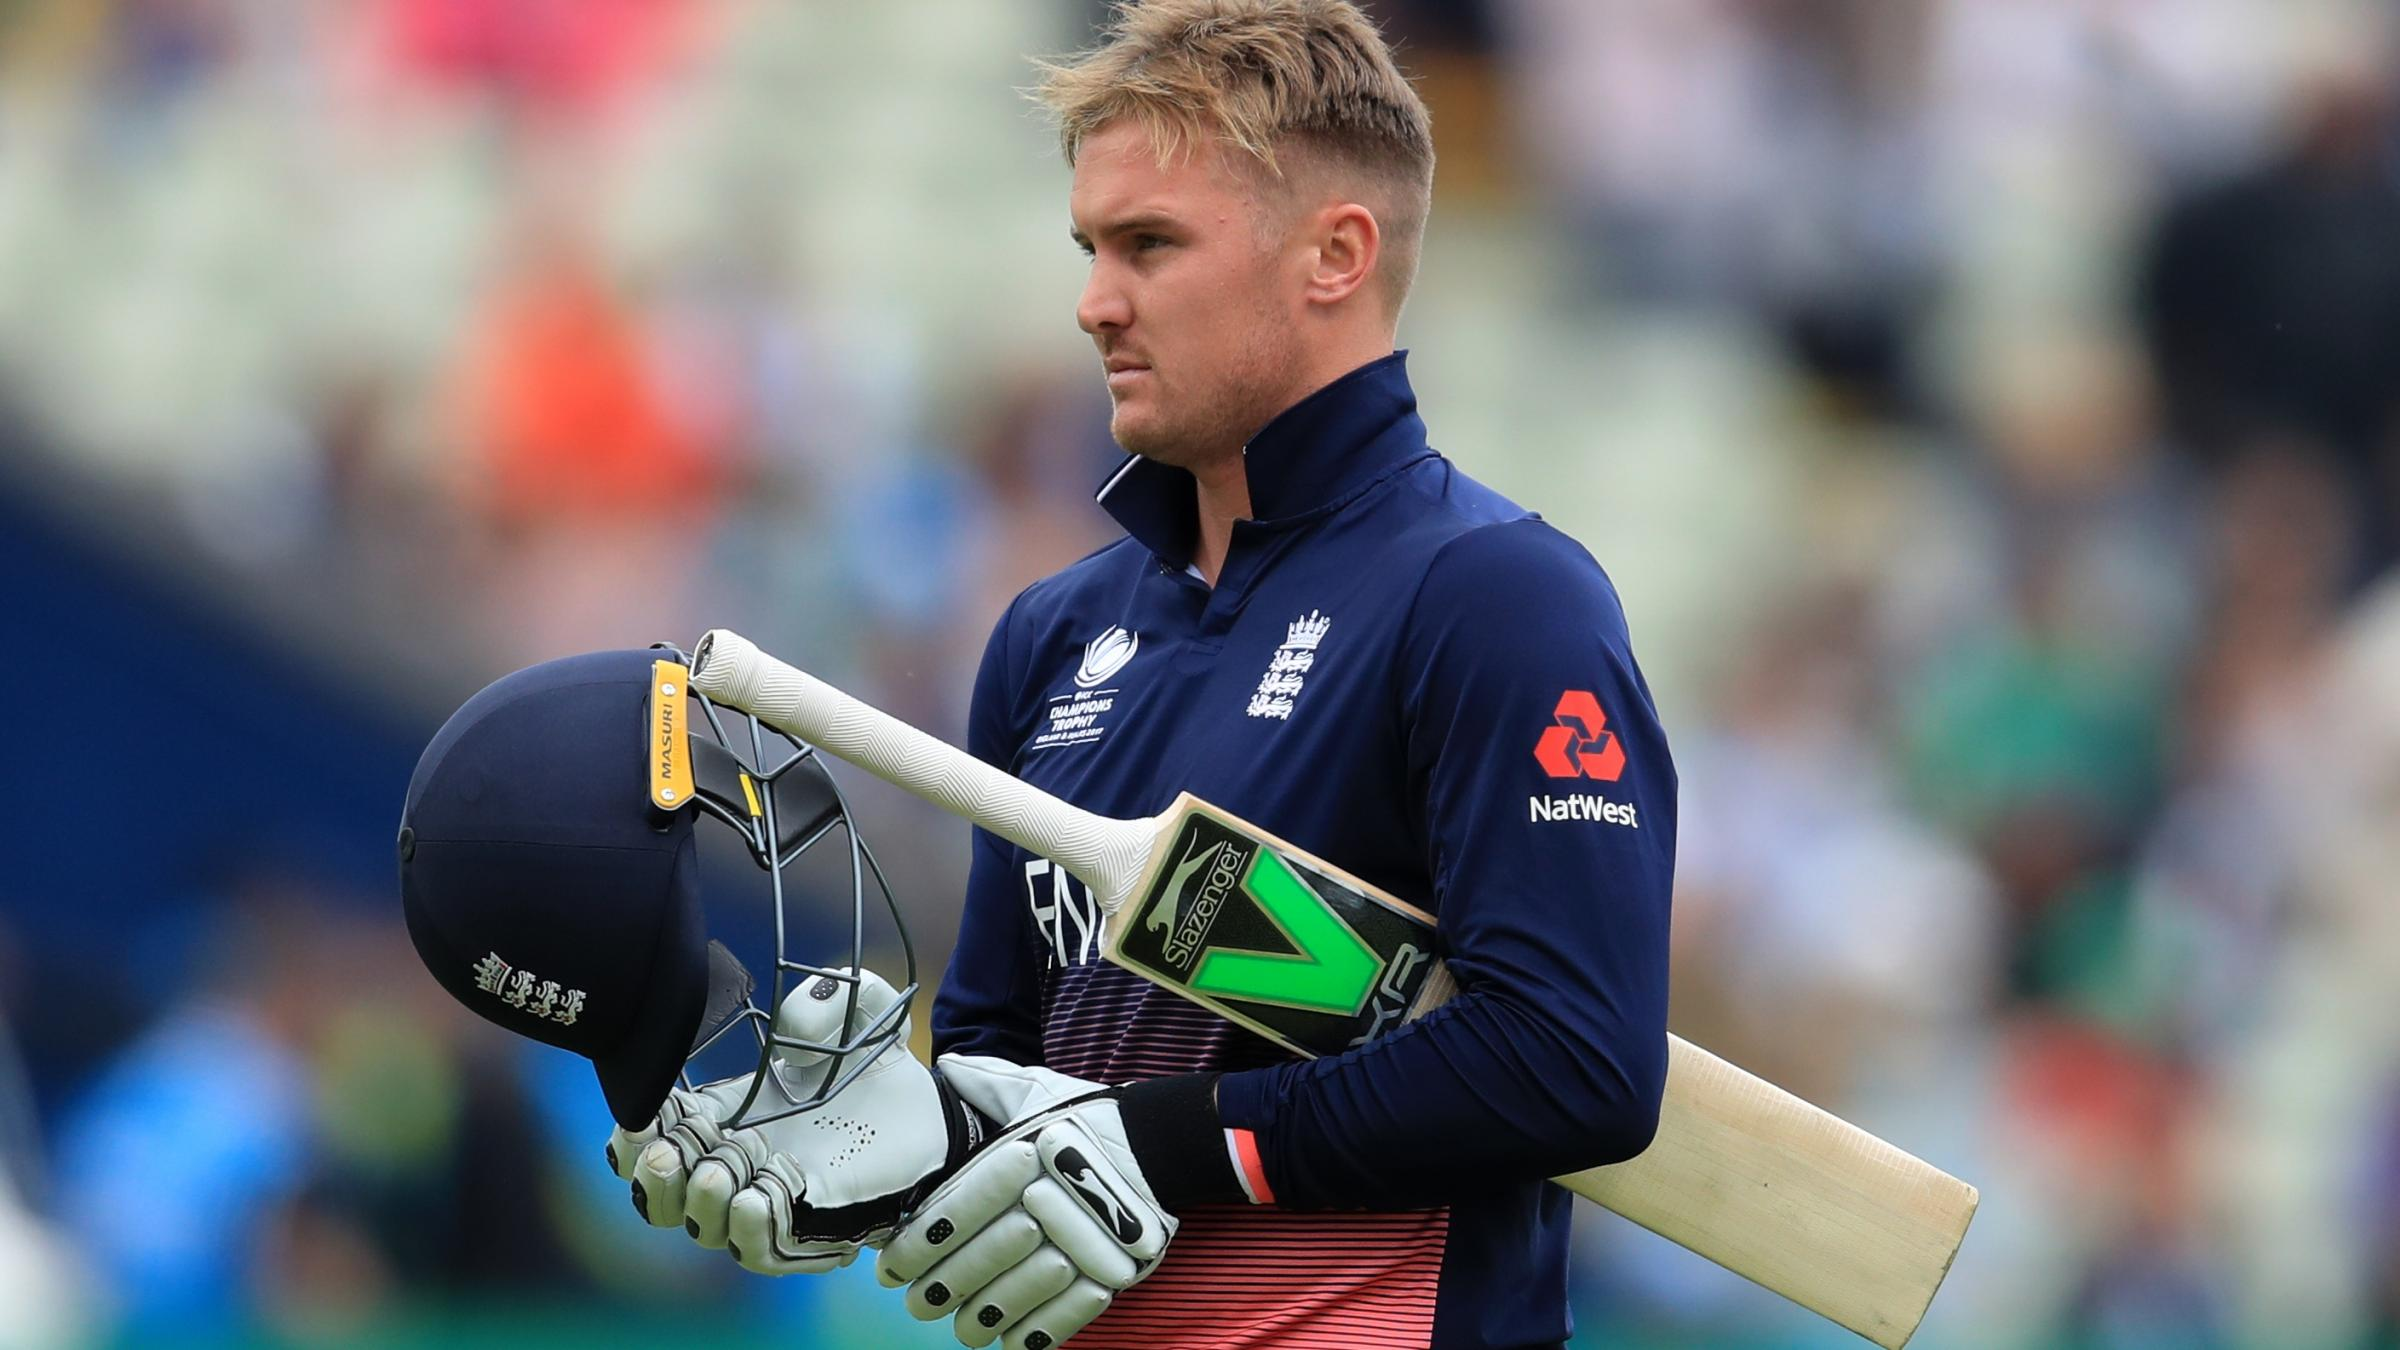 England crumble to 211 all out against Pakistan